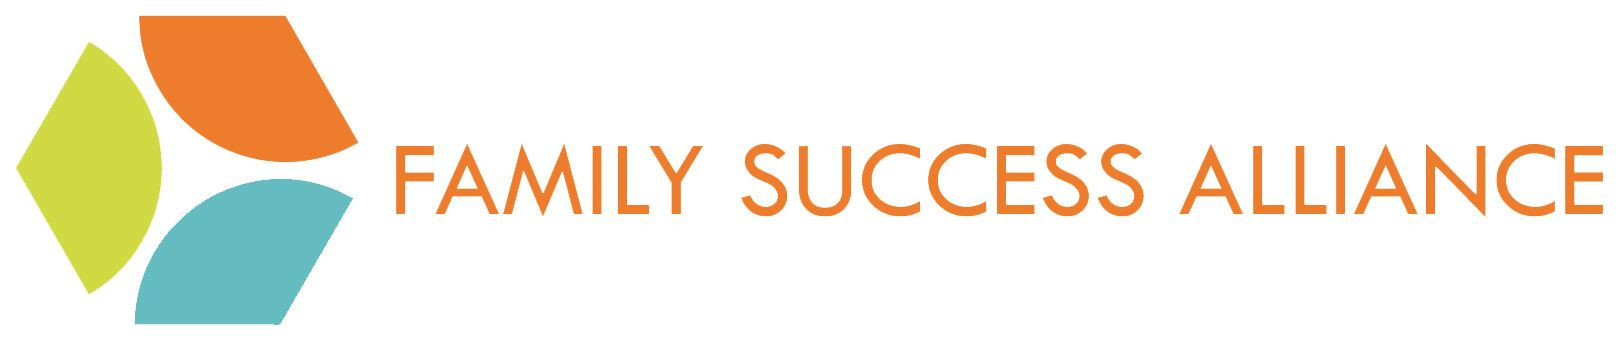 family success alliance